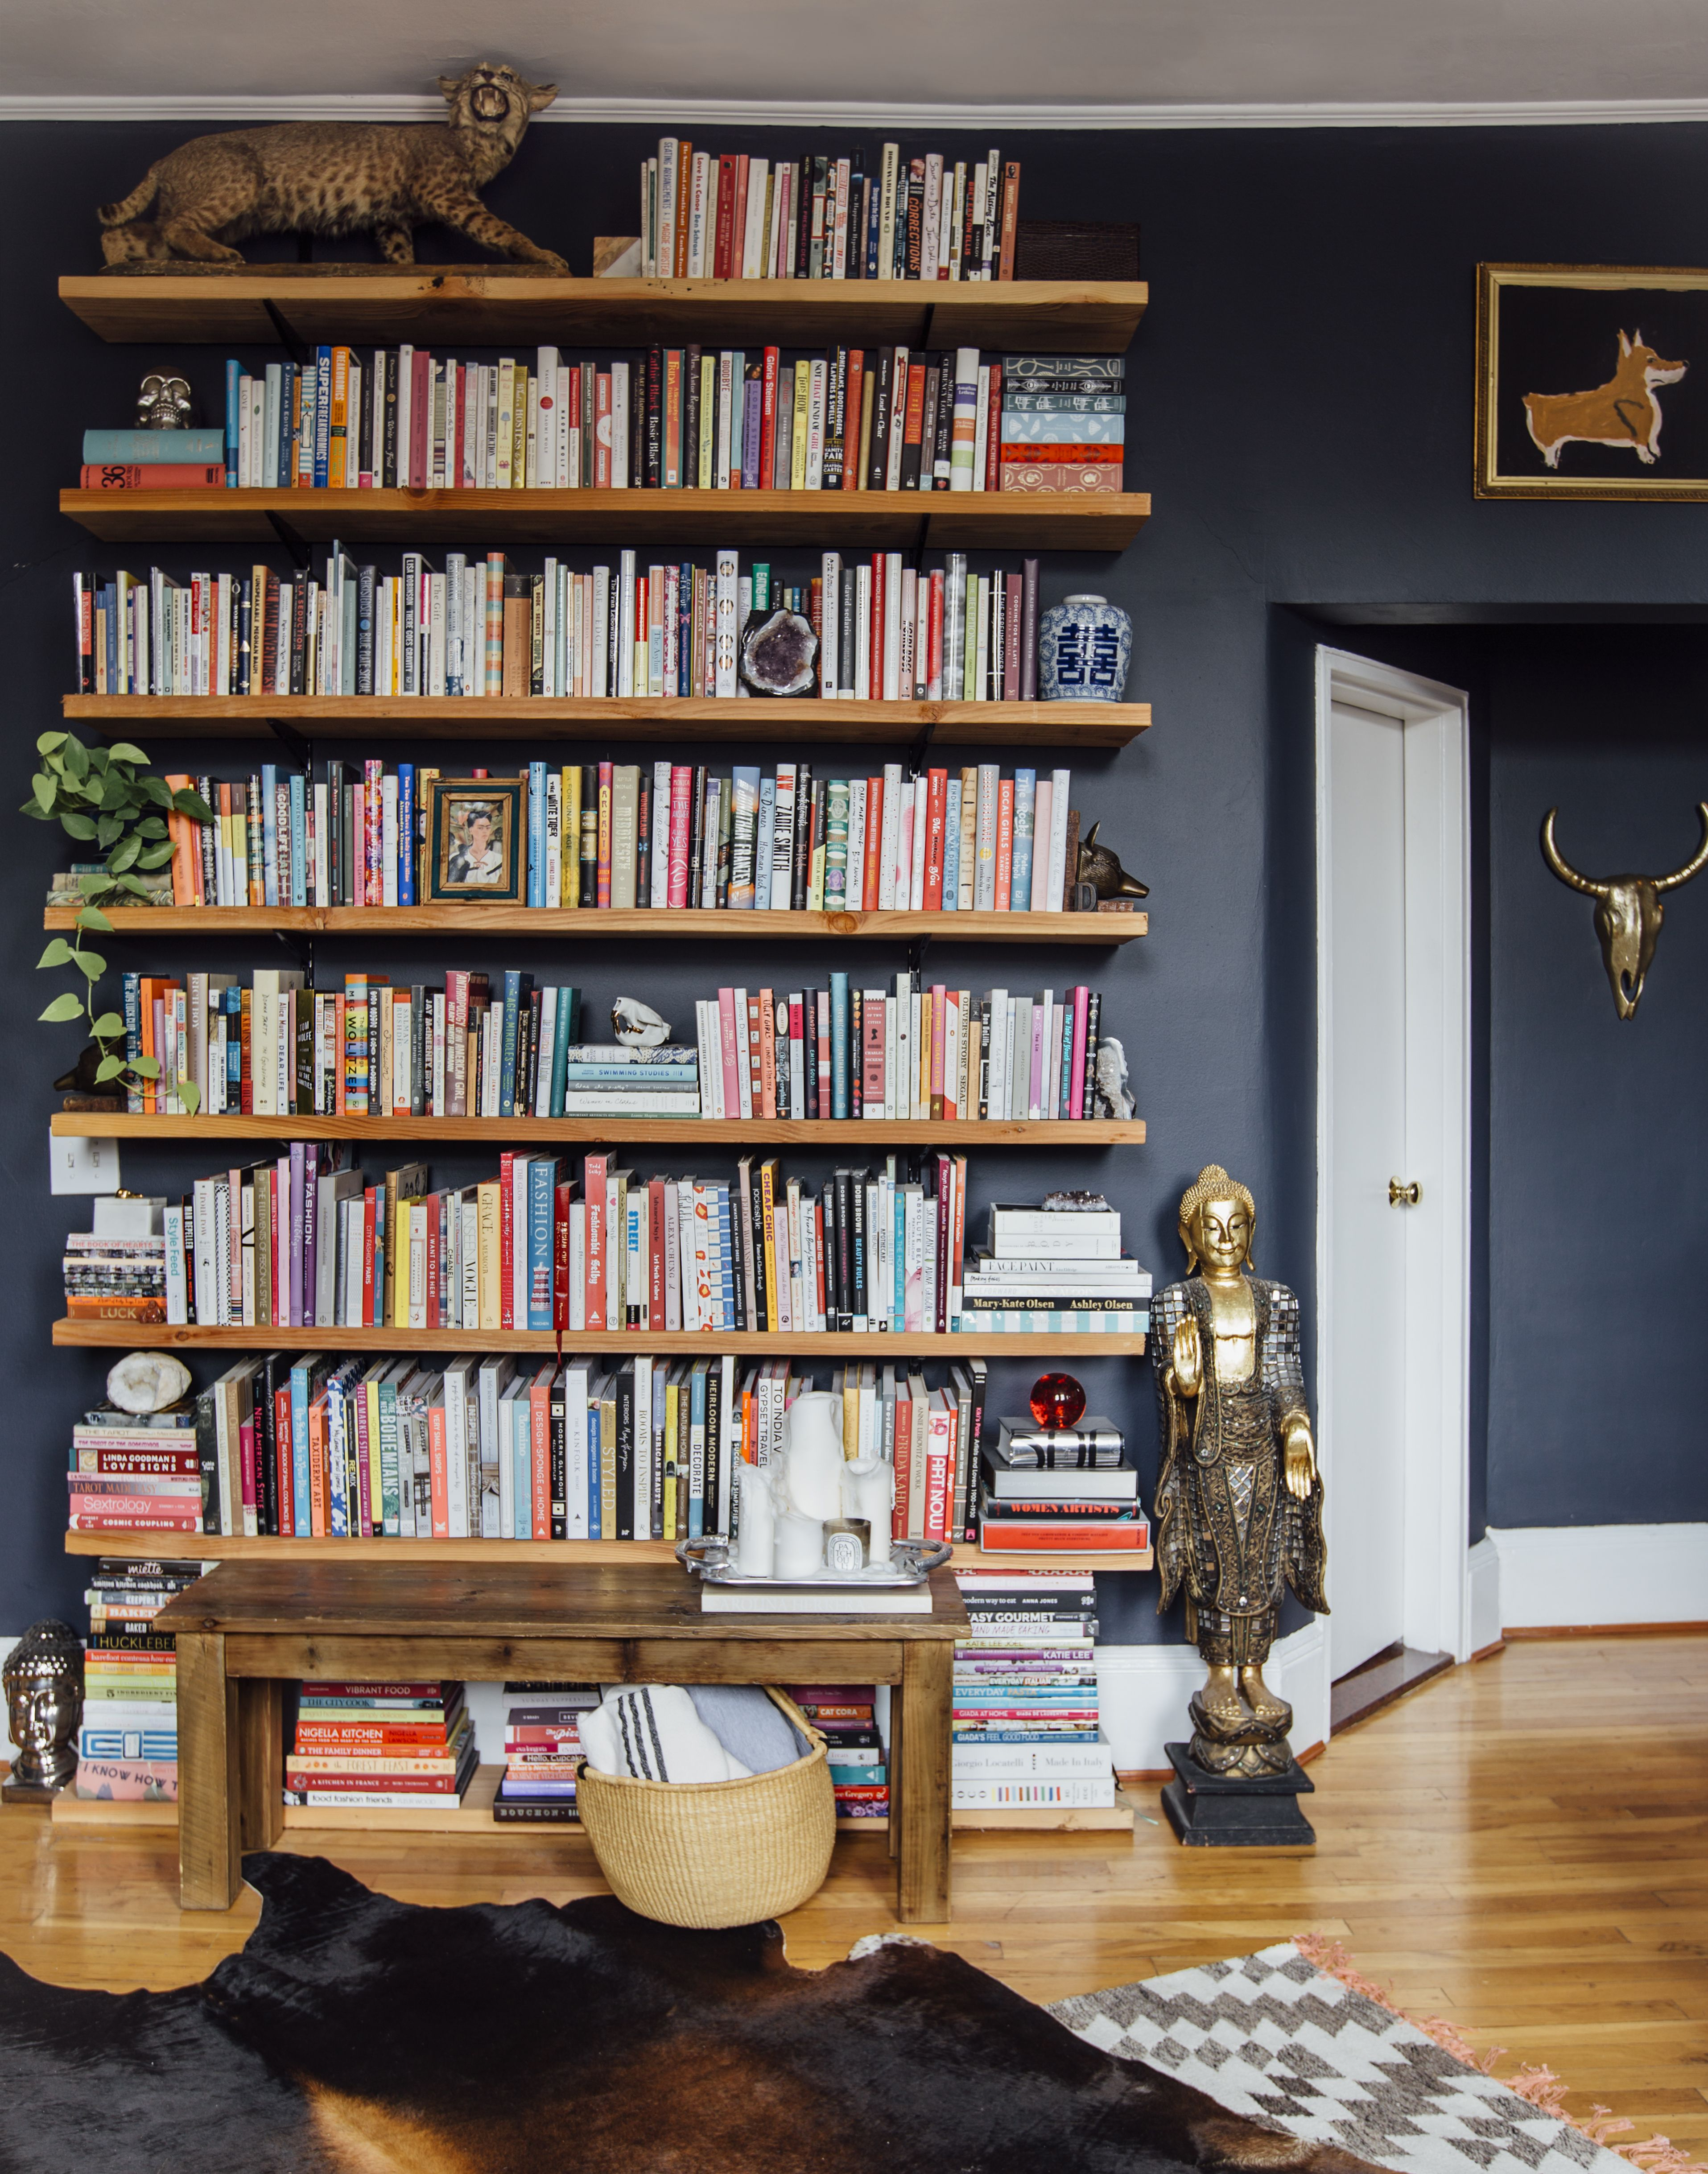 How To Feng Shui Your Home For Better Balance Floor To Ceiling